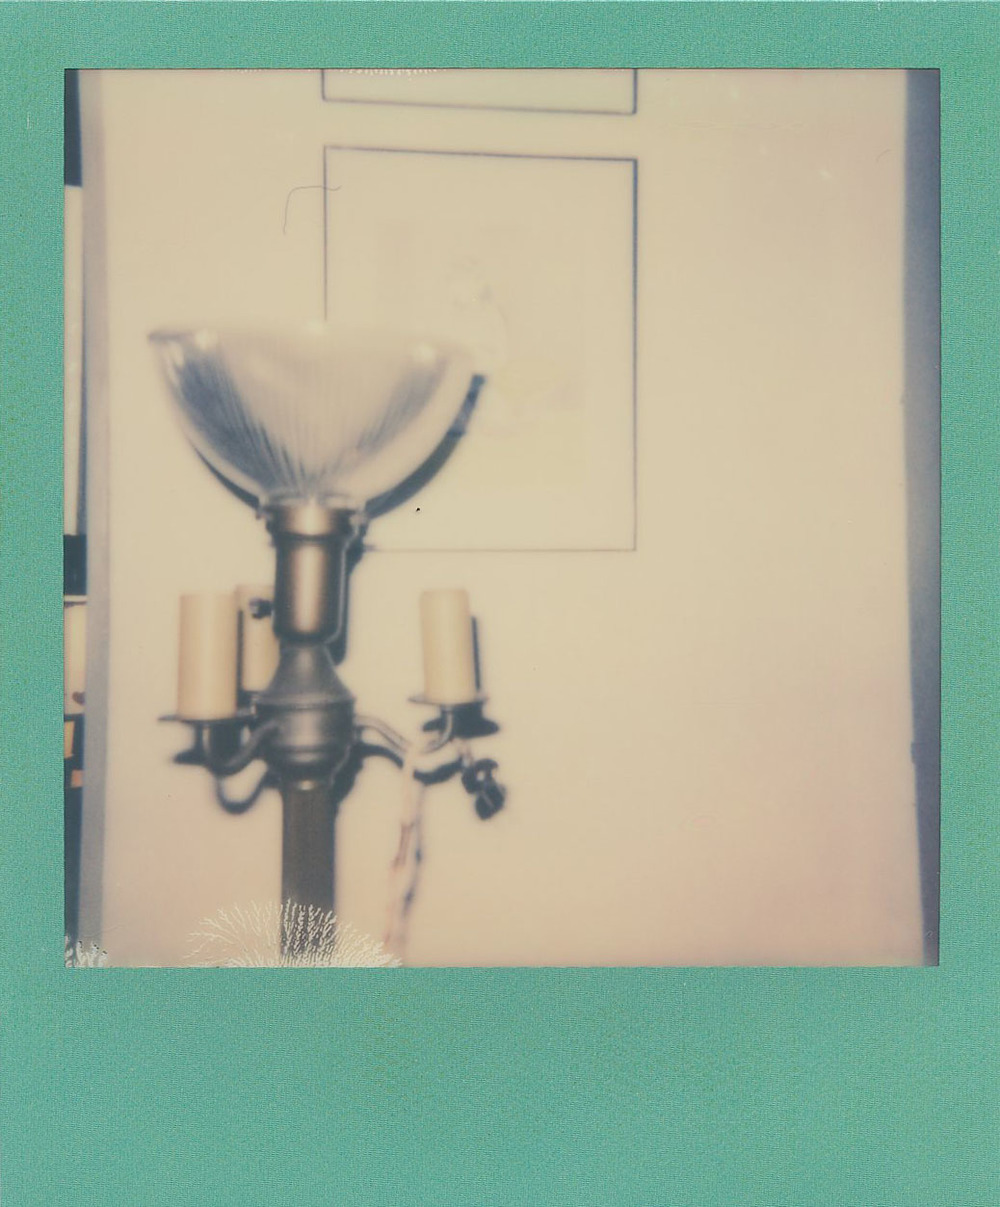 antique_lamp.jpg